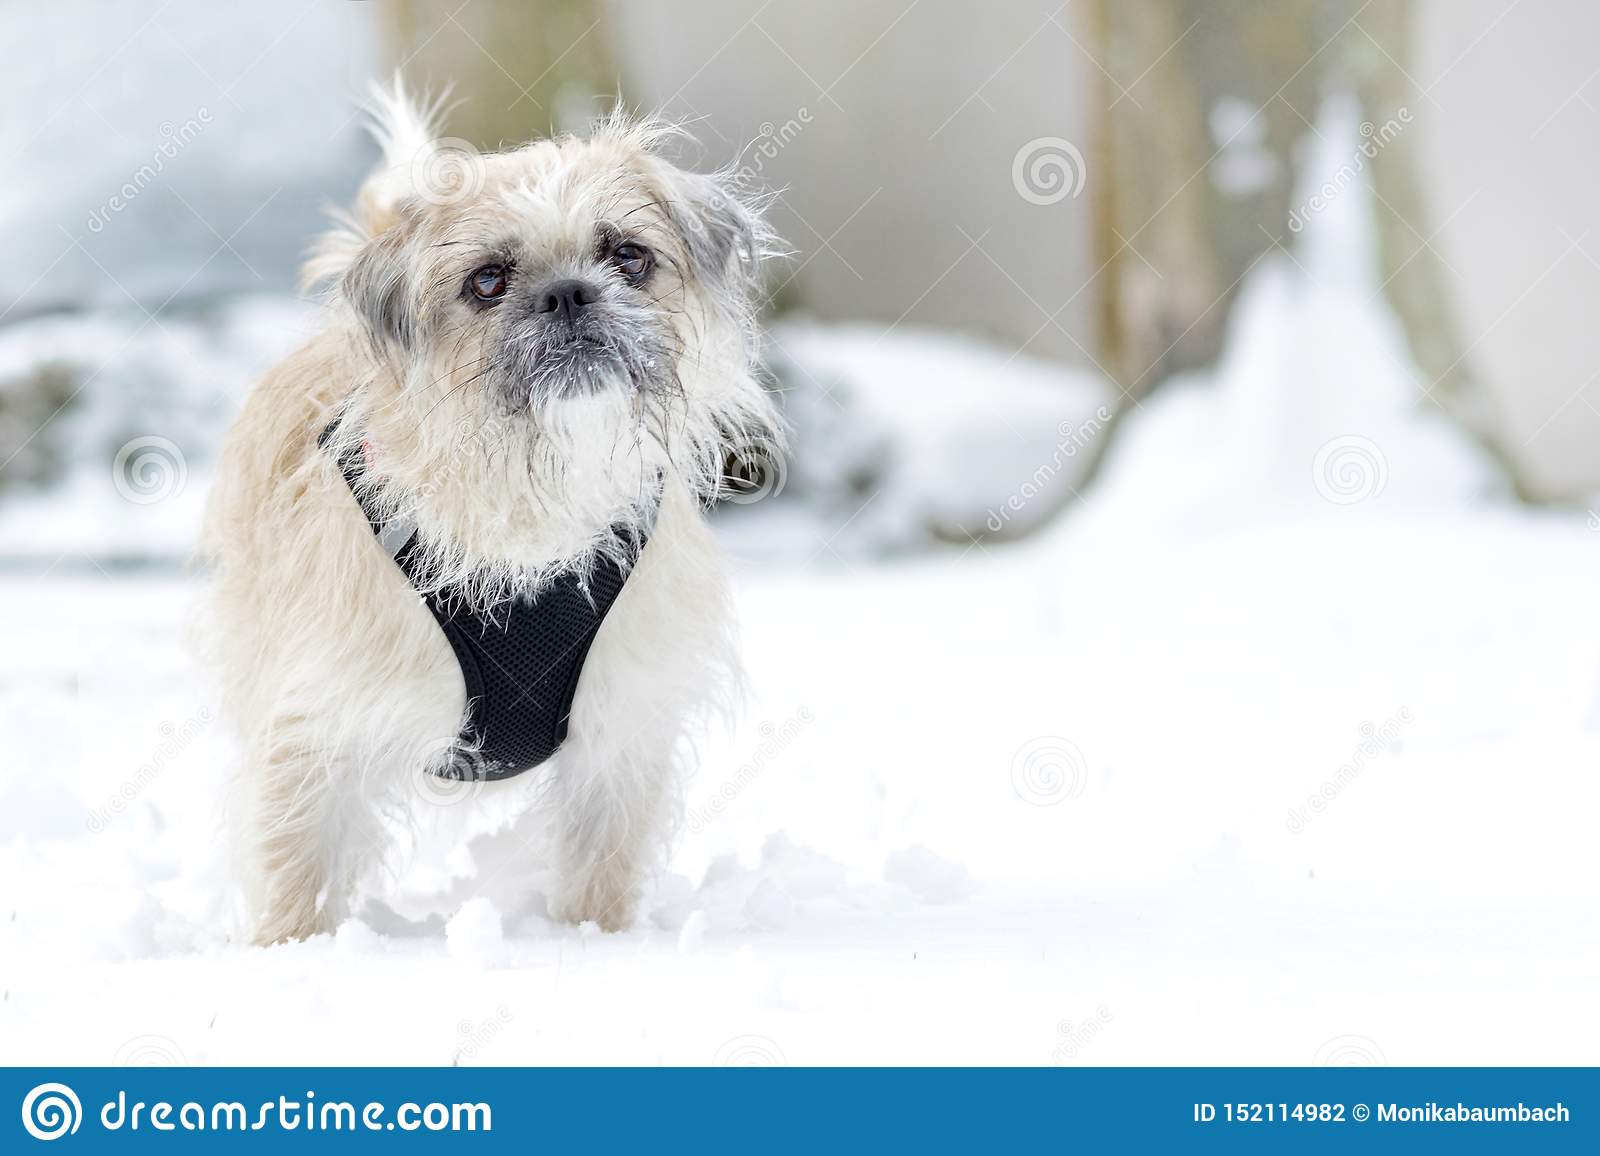 White mixed breed female dog with scraggy fur and black harness standing in snow